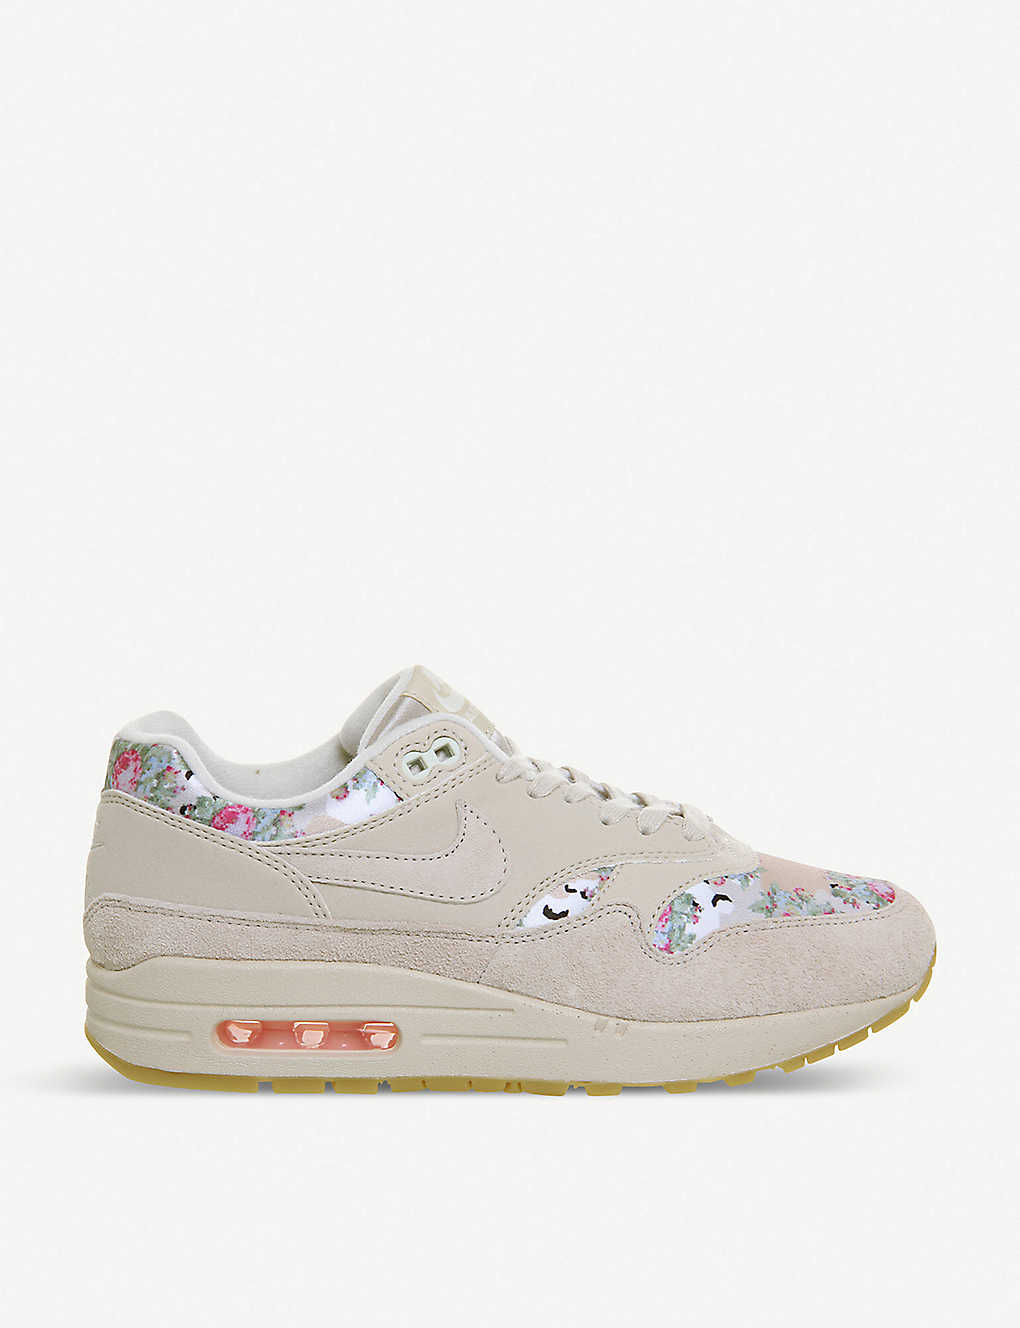 57237a4d4691d NIKE - Air Max 1 floral-print leather trainers